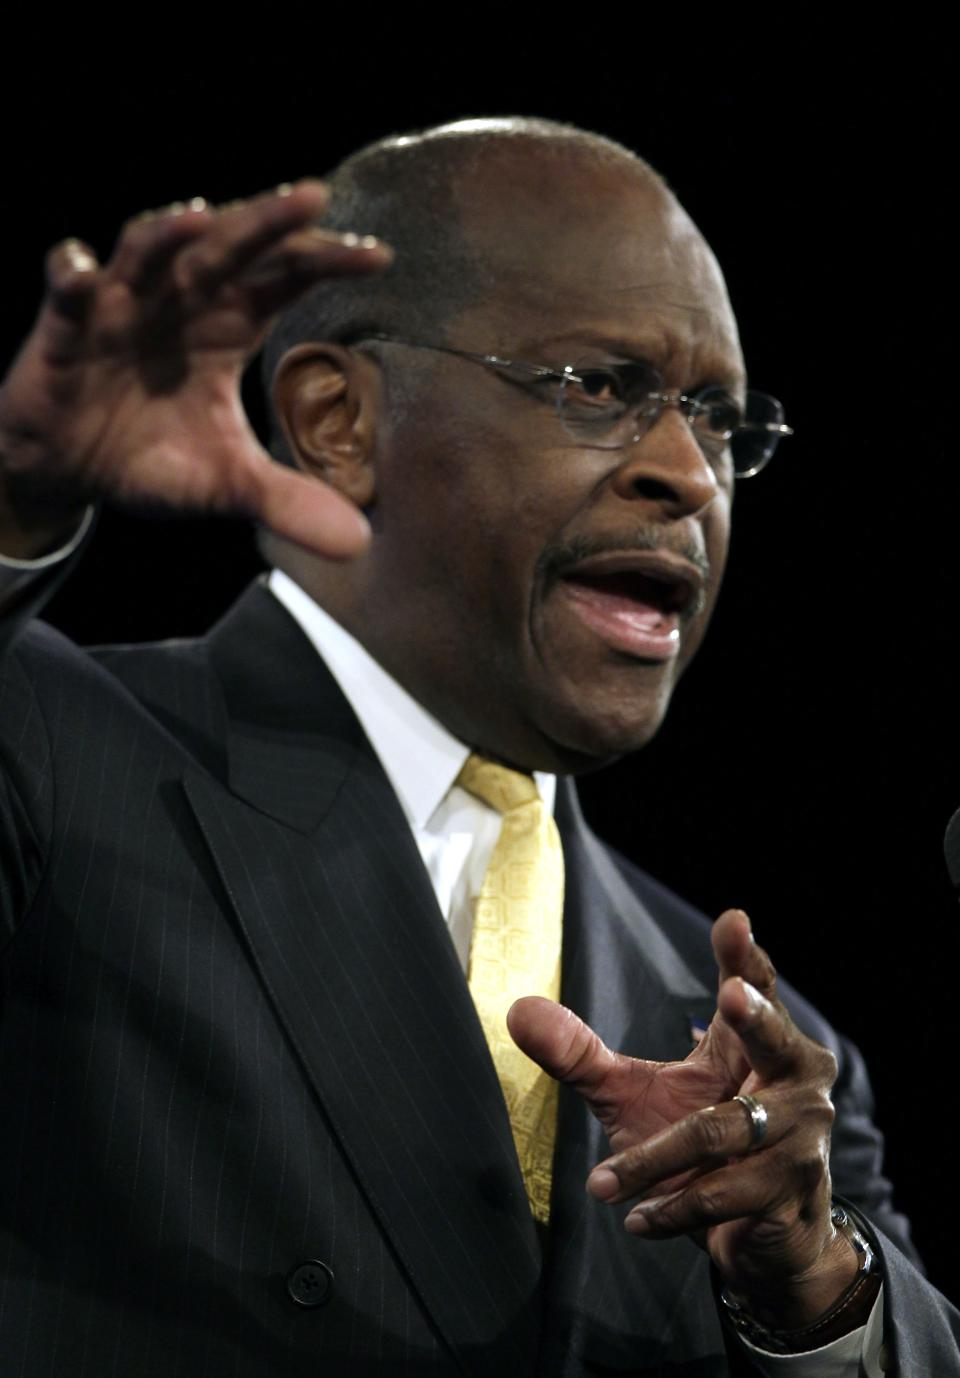 Republican presidential candidate businessman Herman Cain, speaks to delegates before straw poll during a Florida Republican Party Presidency 5 Convention Saturday, Sept. 24, 2011, in Orlando, Fla. (AP Photo/John Raoux)